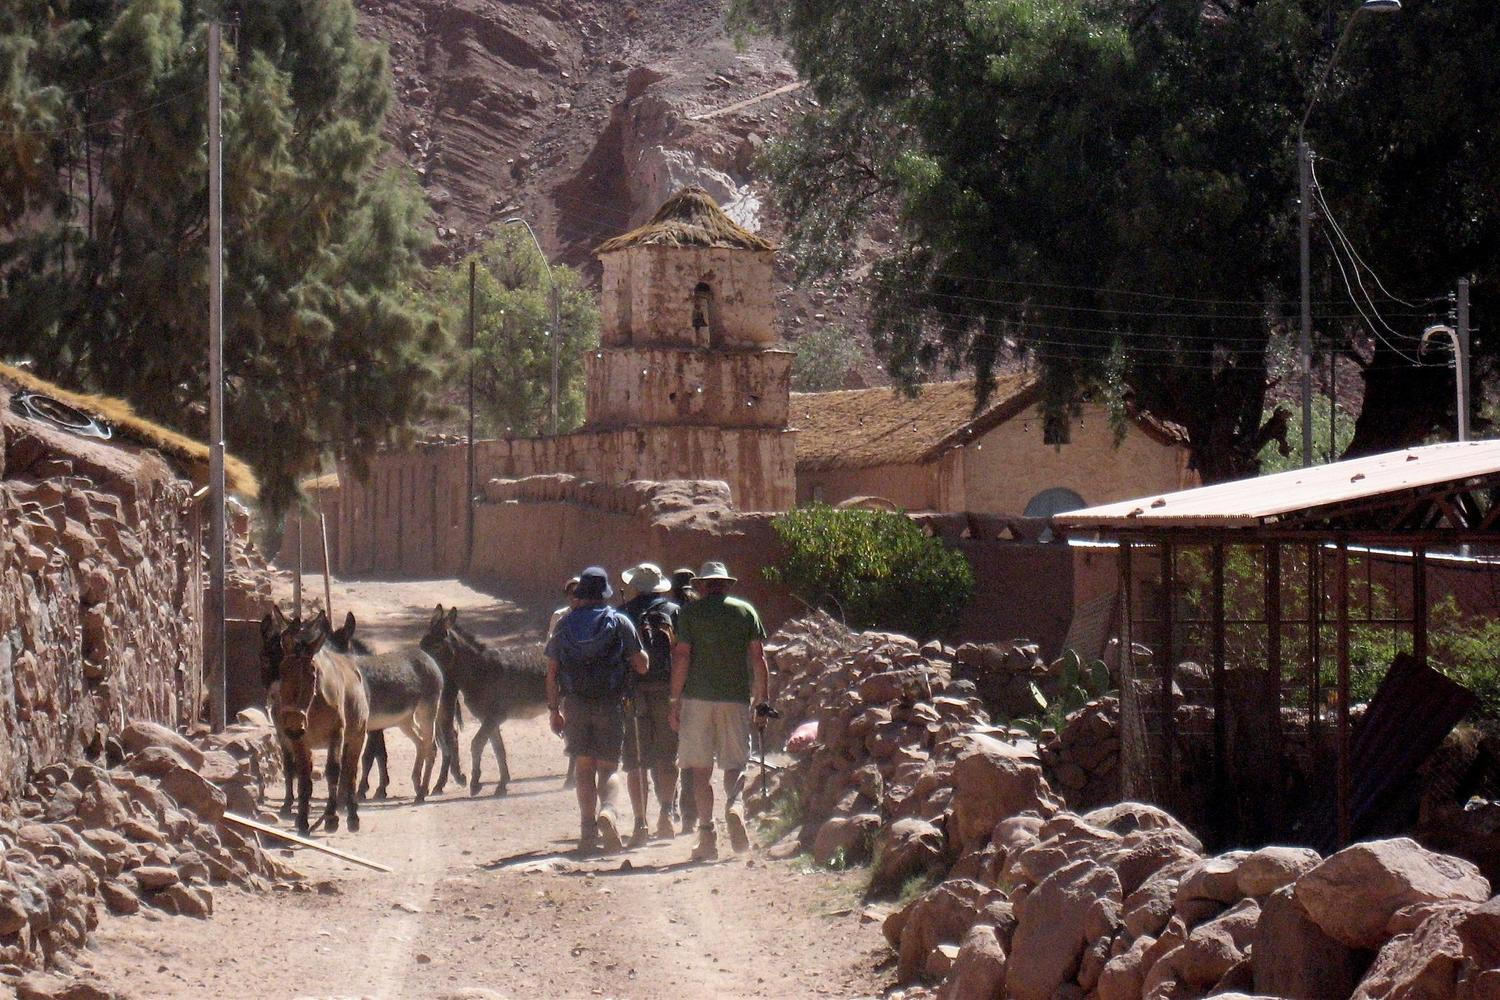 Walking into Rio Grande in the Atacama Desert